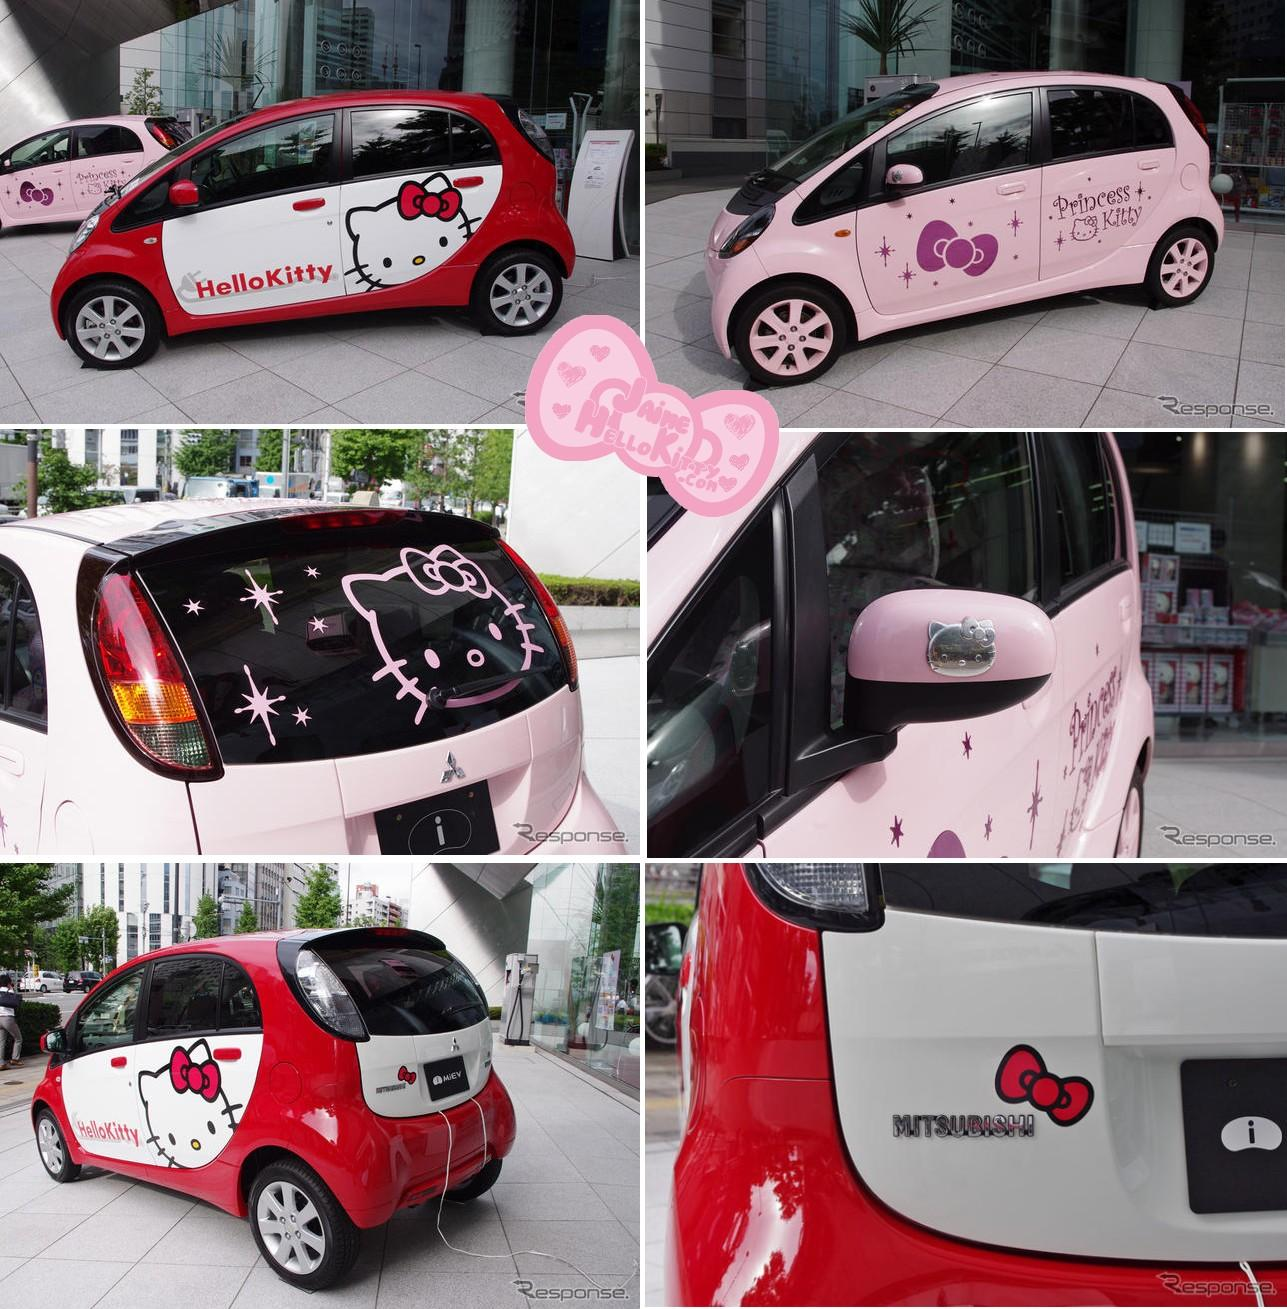 la voiture i miev mitsubishi dition hello kitty paperblog. Black Bedroom Furniture Sets. Home Design Ideas